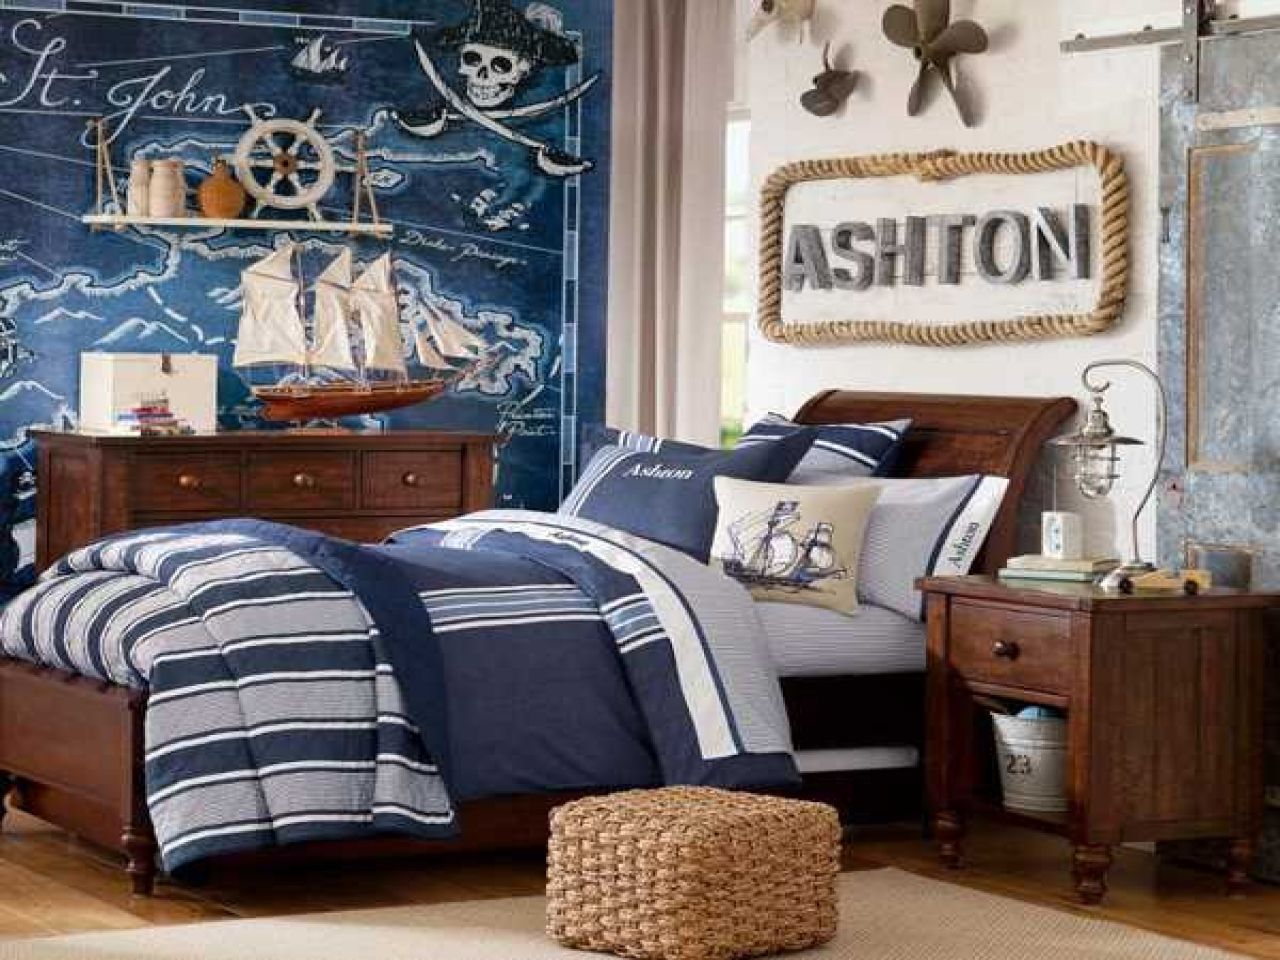 Barn Boy Furniture Pottery Barn Boys Room Ideas Excellent